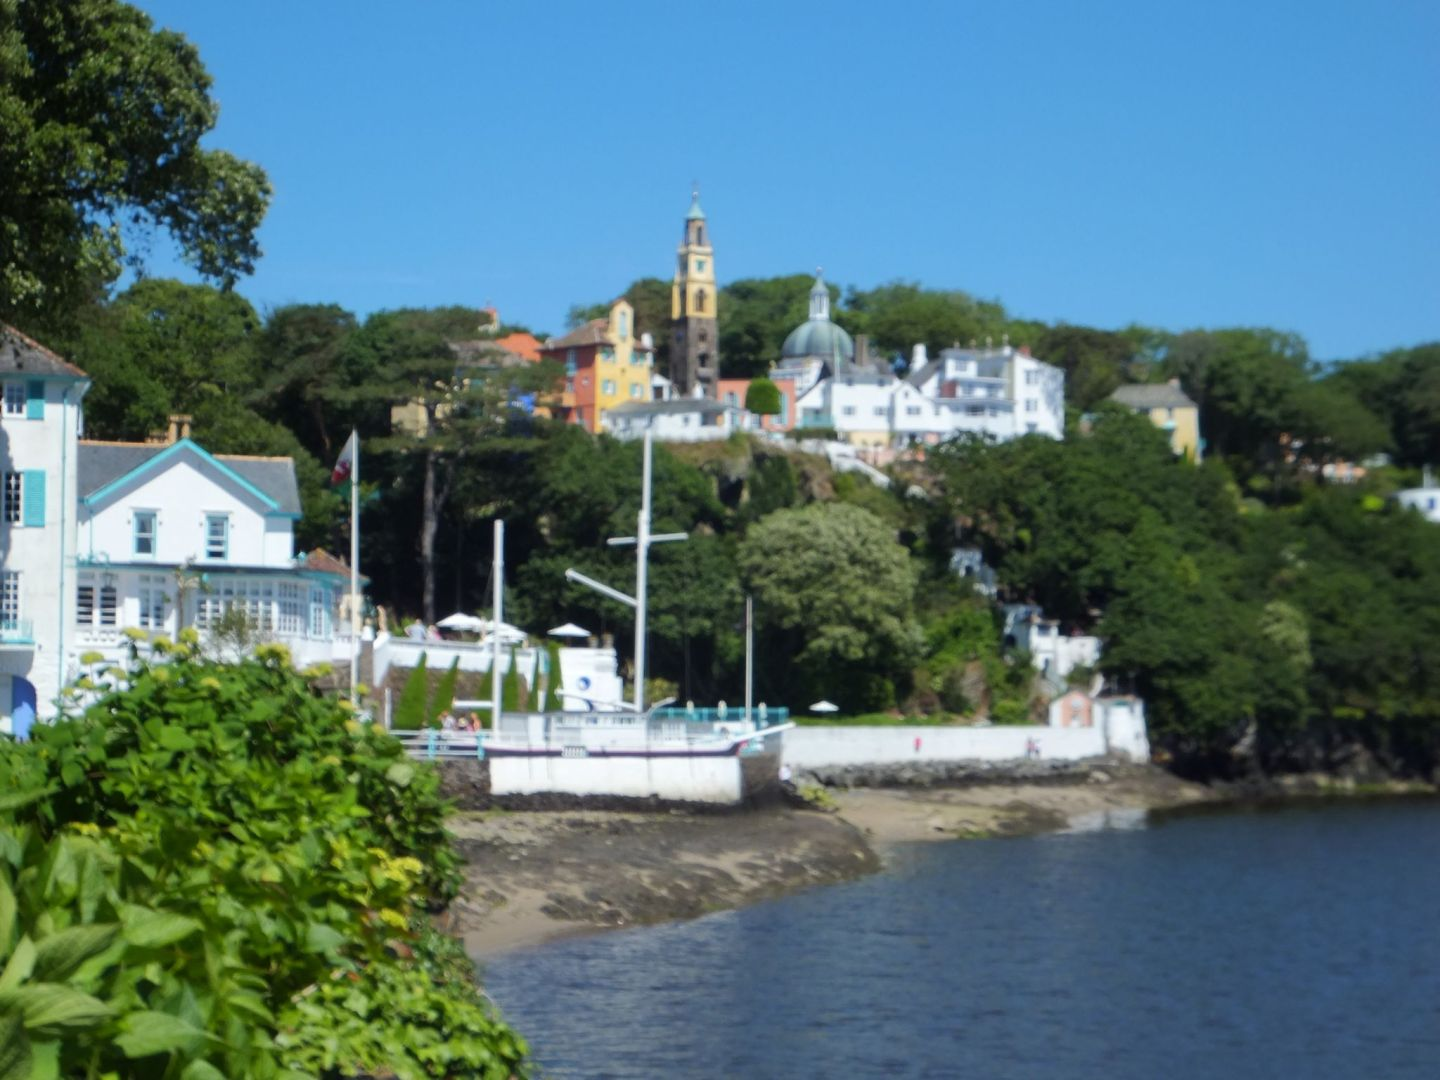 Village of Portmeirion from a distance